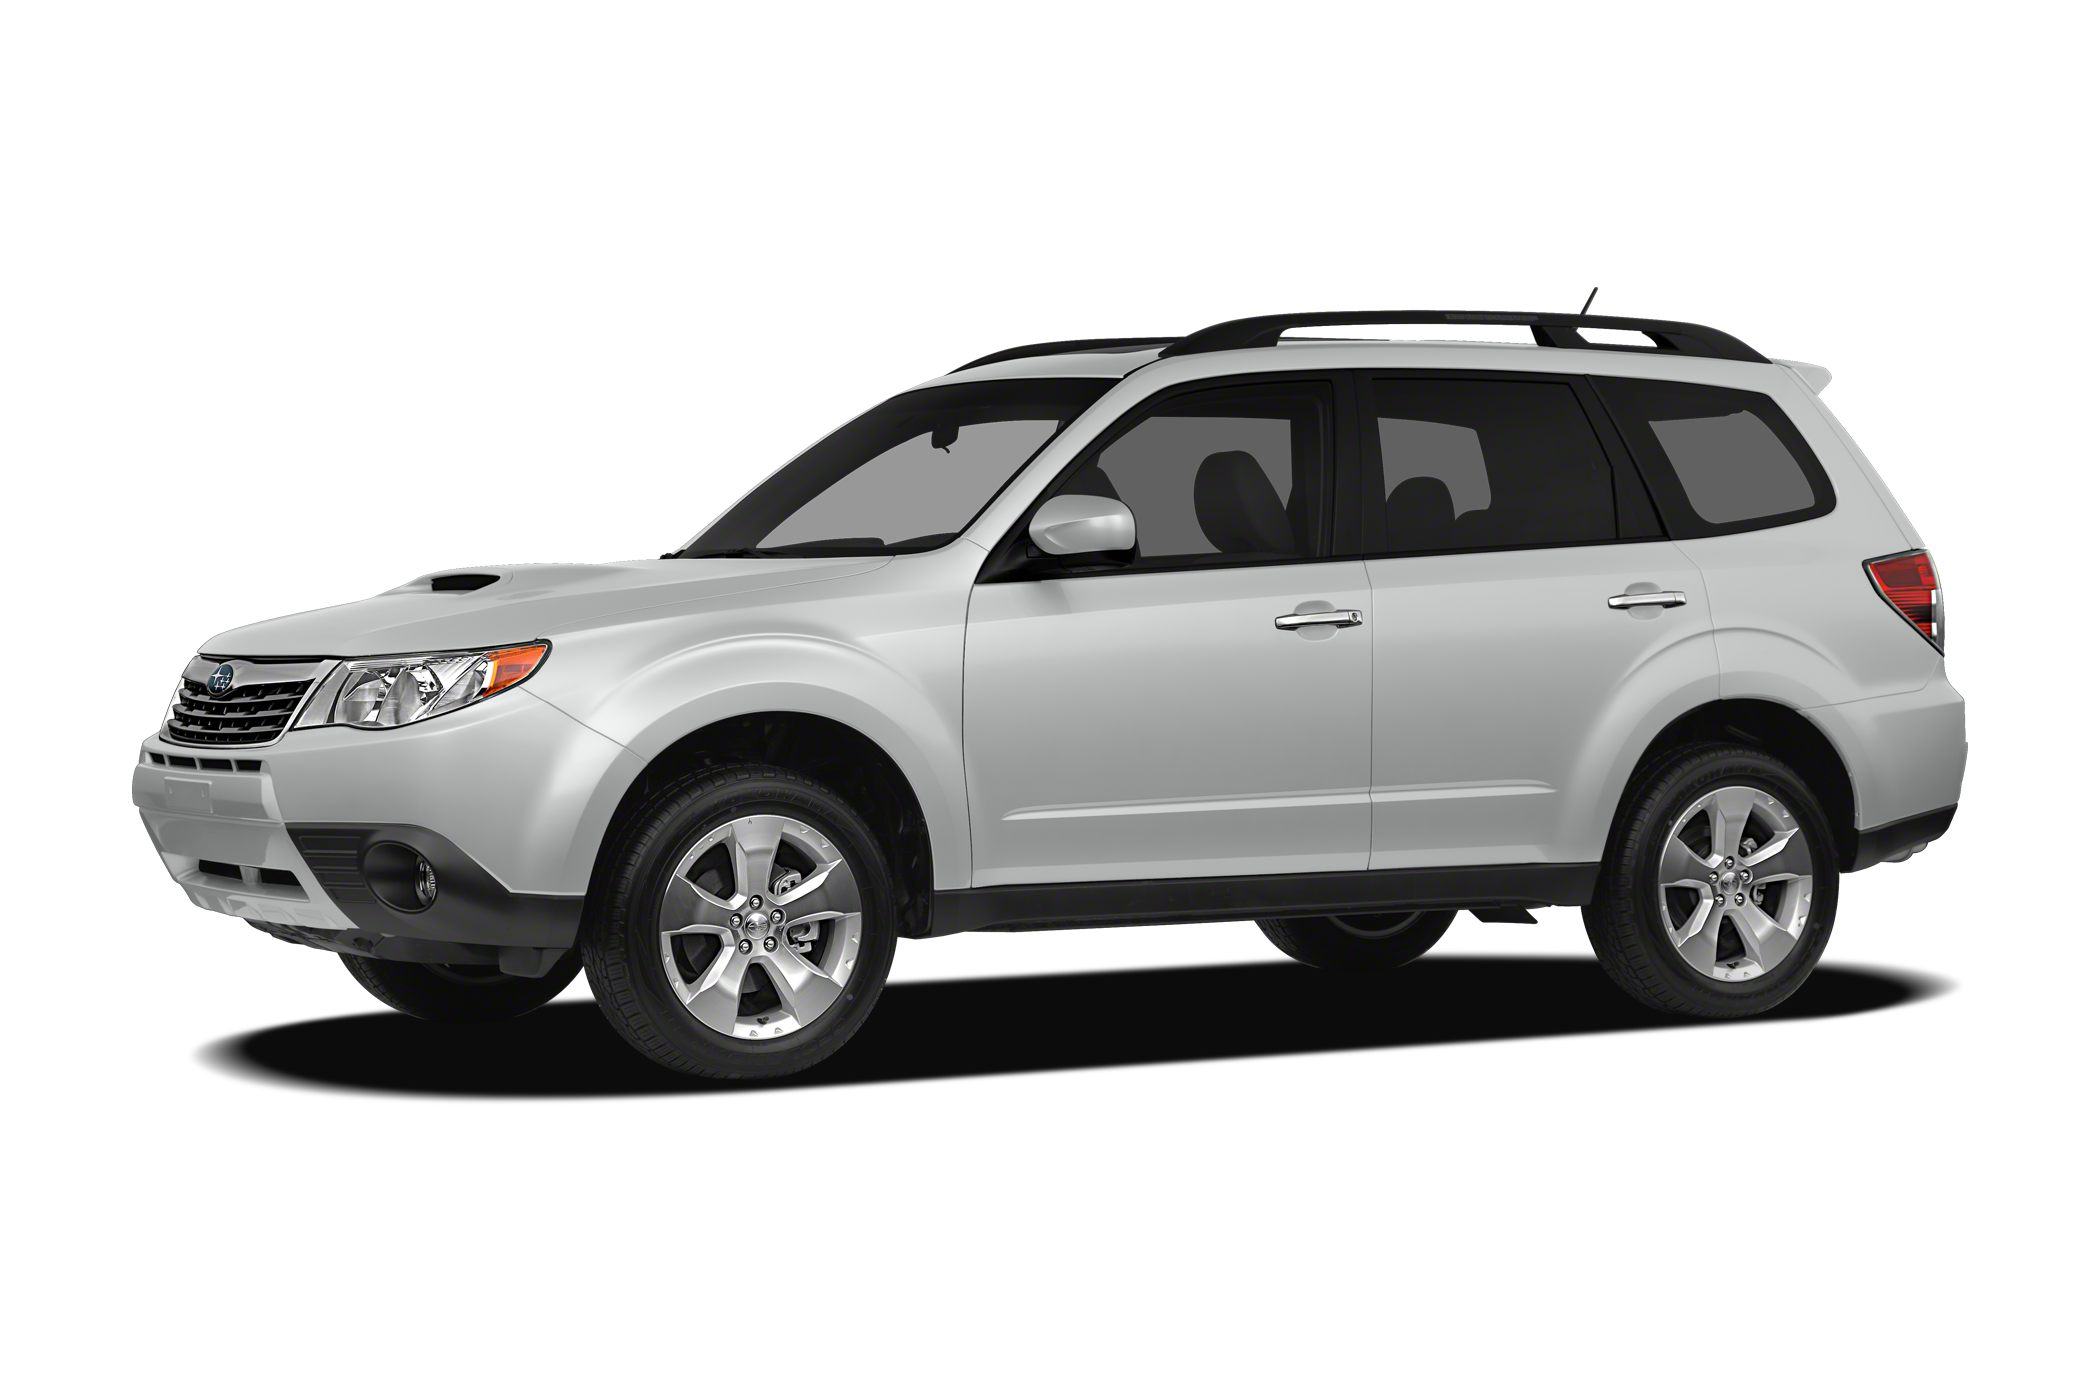 2011 Subaru Forester 2.5 XT Touring SUV for sale in Syracuse for $22,994 with 30,528 miles.